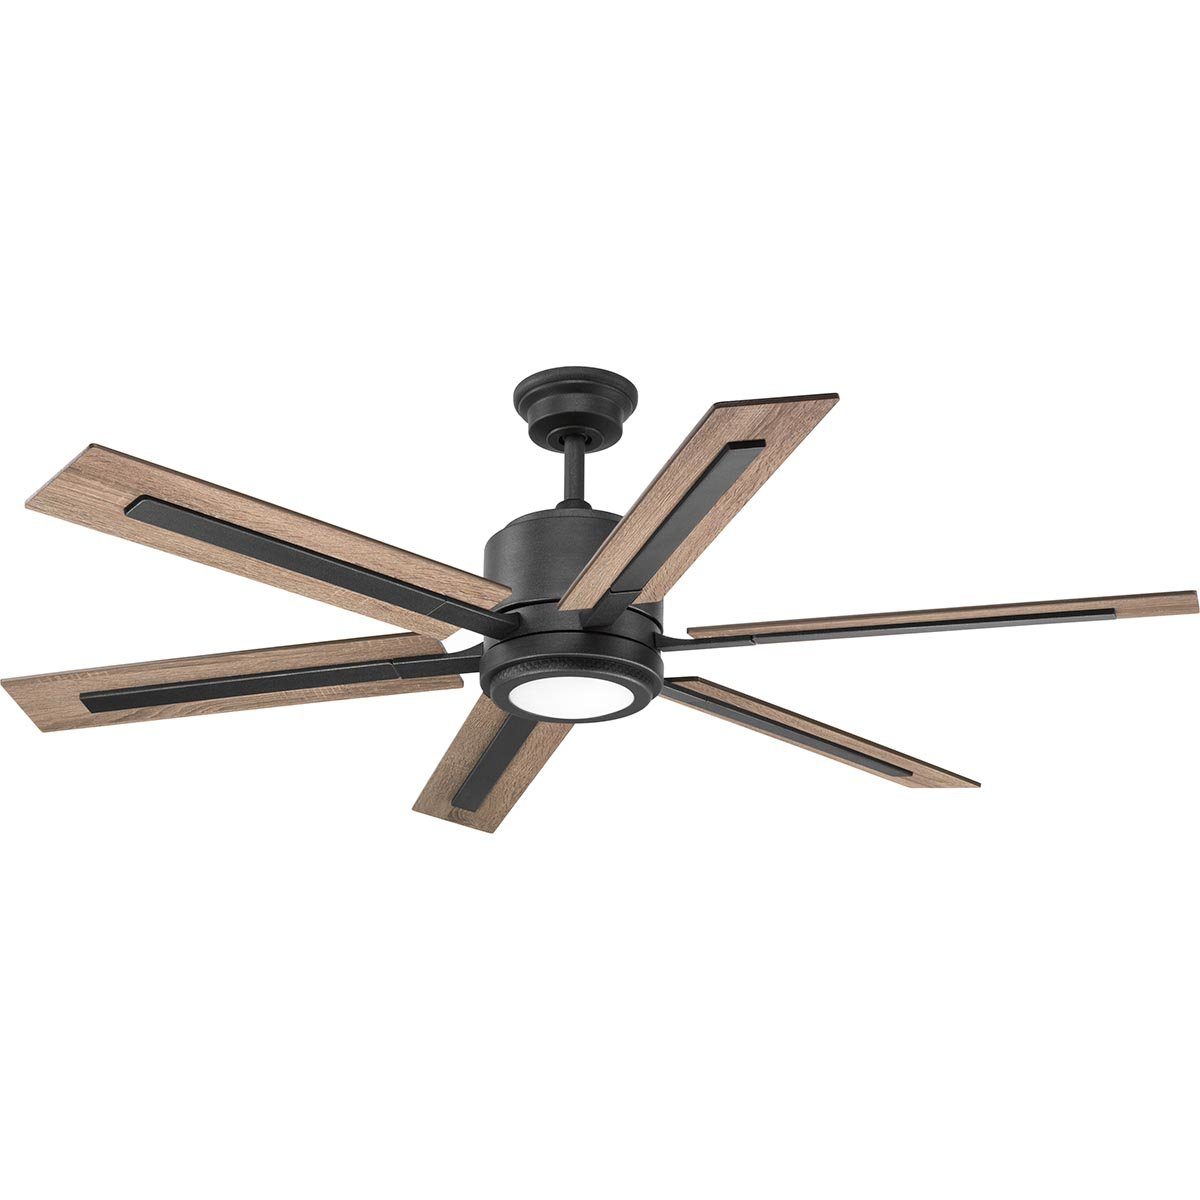 Wayfair With Regard To Latest Glasgow 7 Blade Ceiling Fans (View 9 of 20)